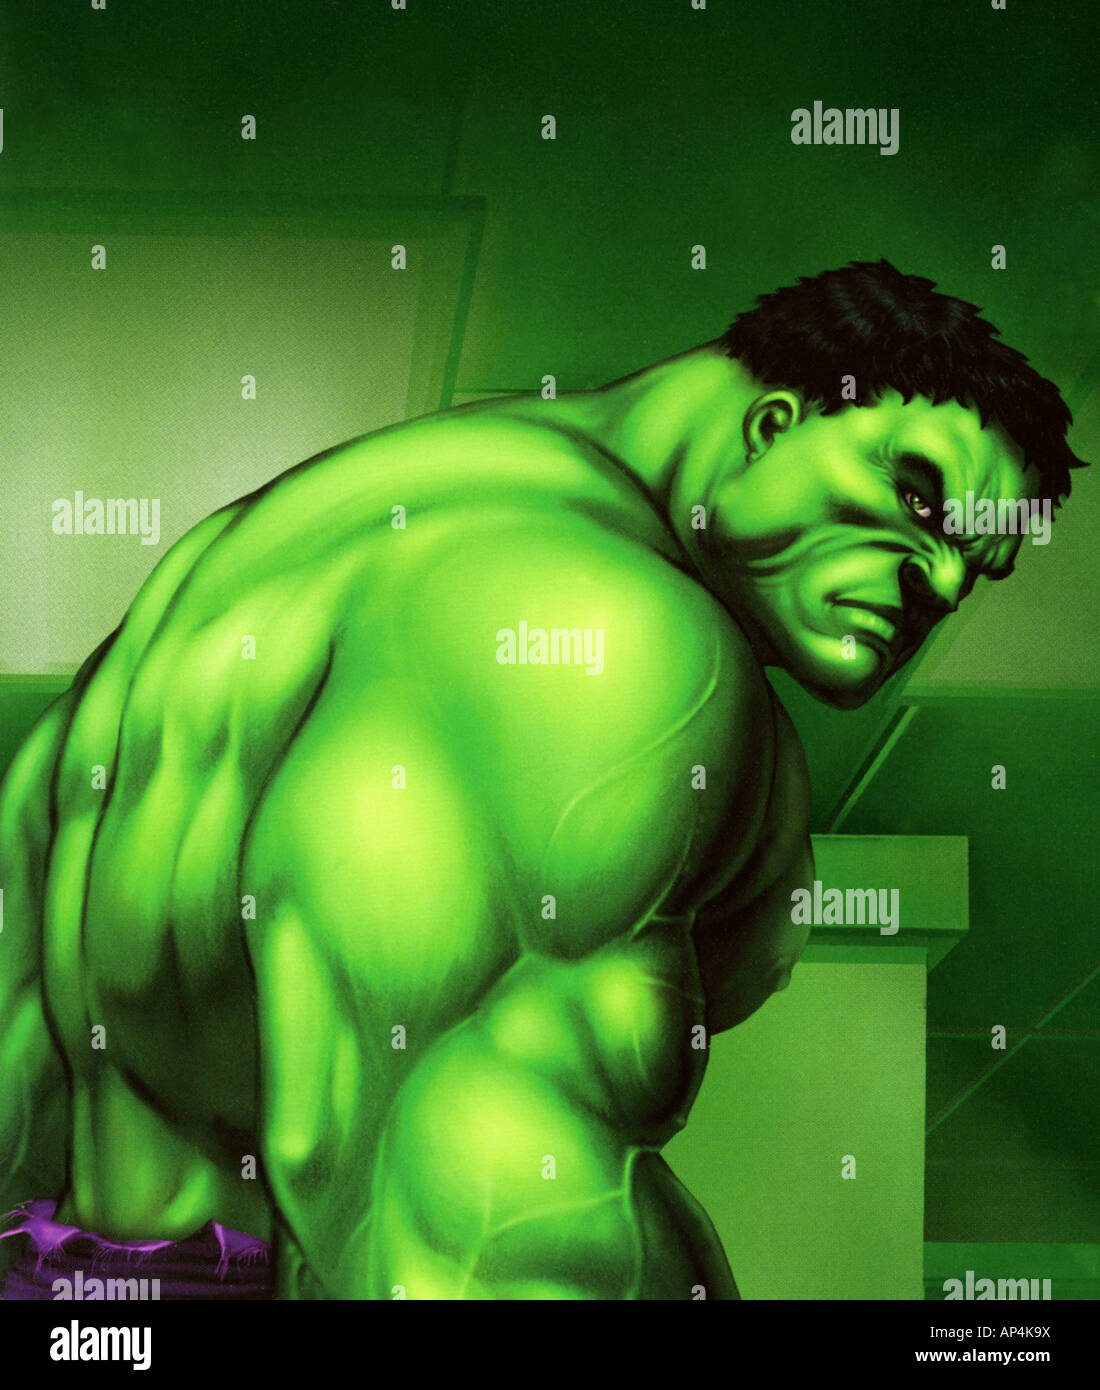 THE HULK - still from the 2003 Universal film directed by Ang Lee based on the Marvel Comics character - Stock Image